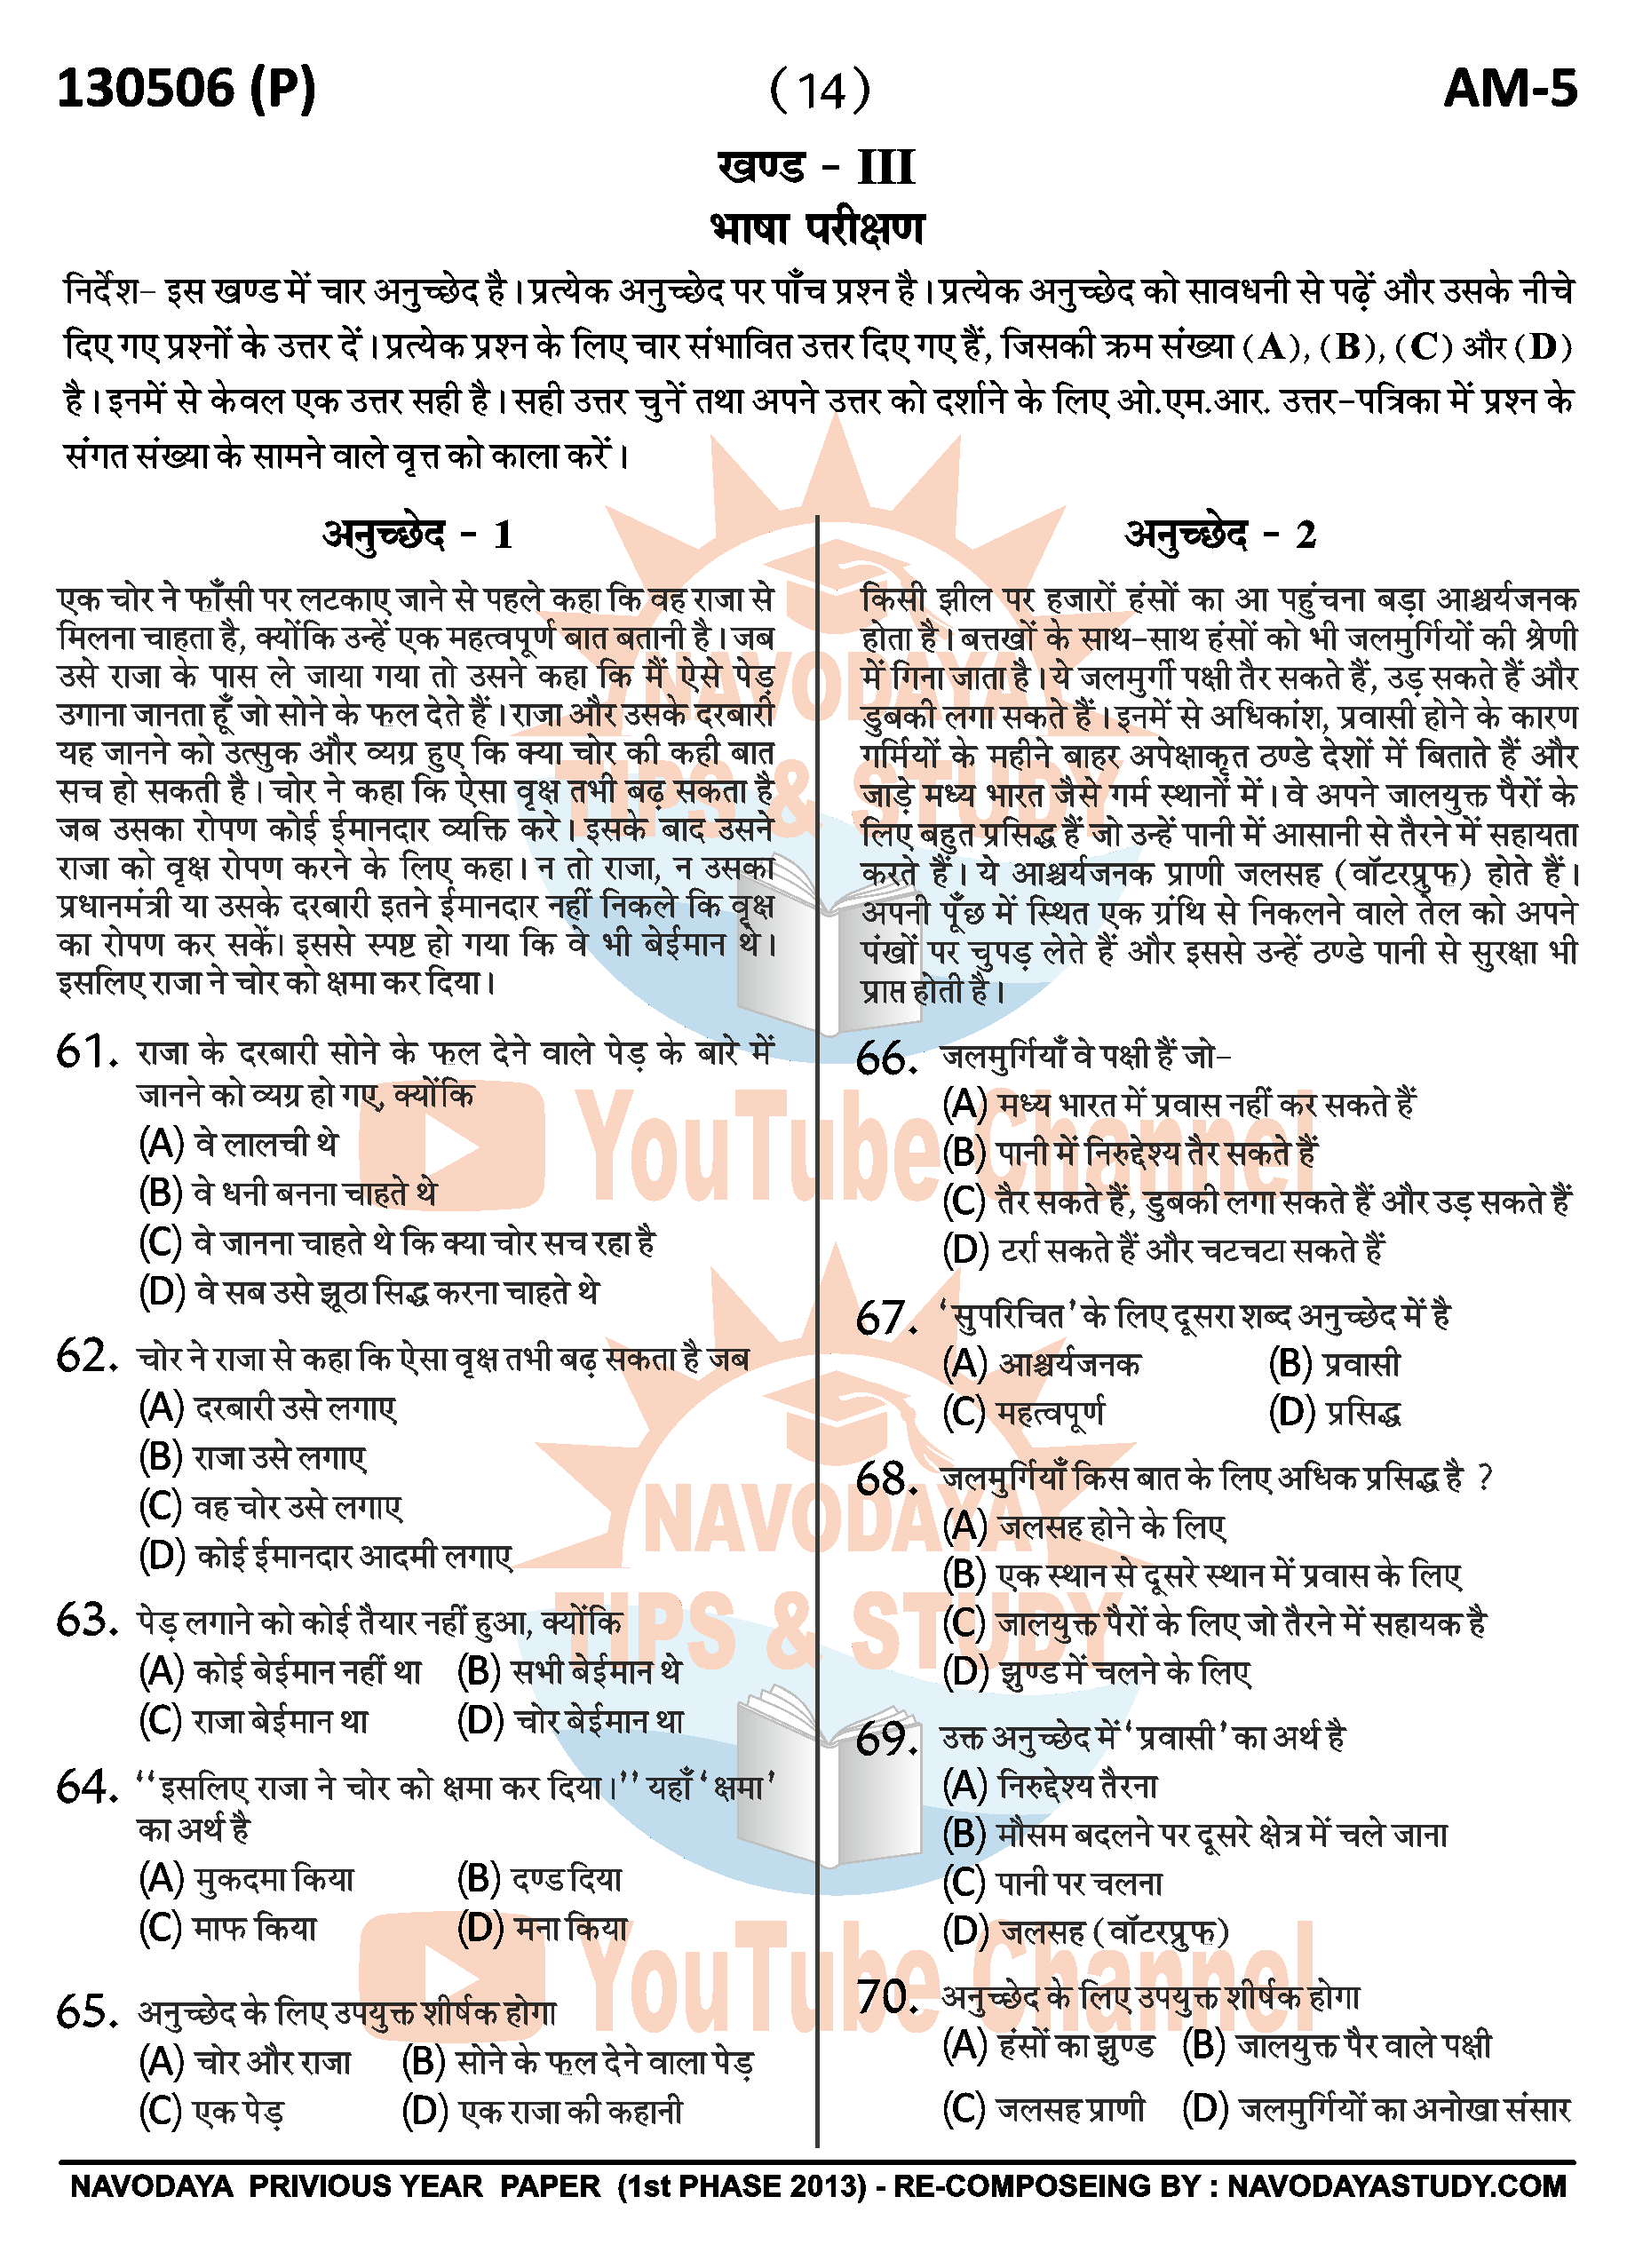 NAVODAYA 2013 AM - 5 HIND OLD YEAR QUESTION PAPER PAGE NO. 14